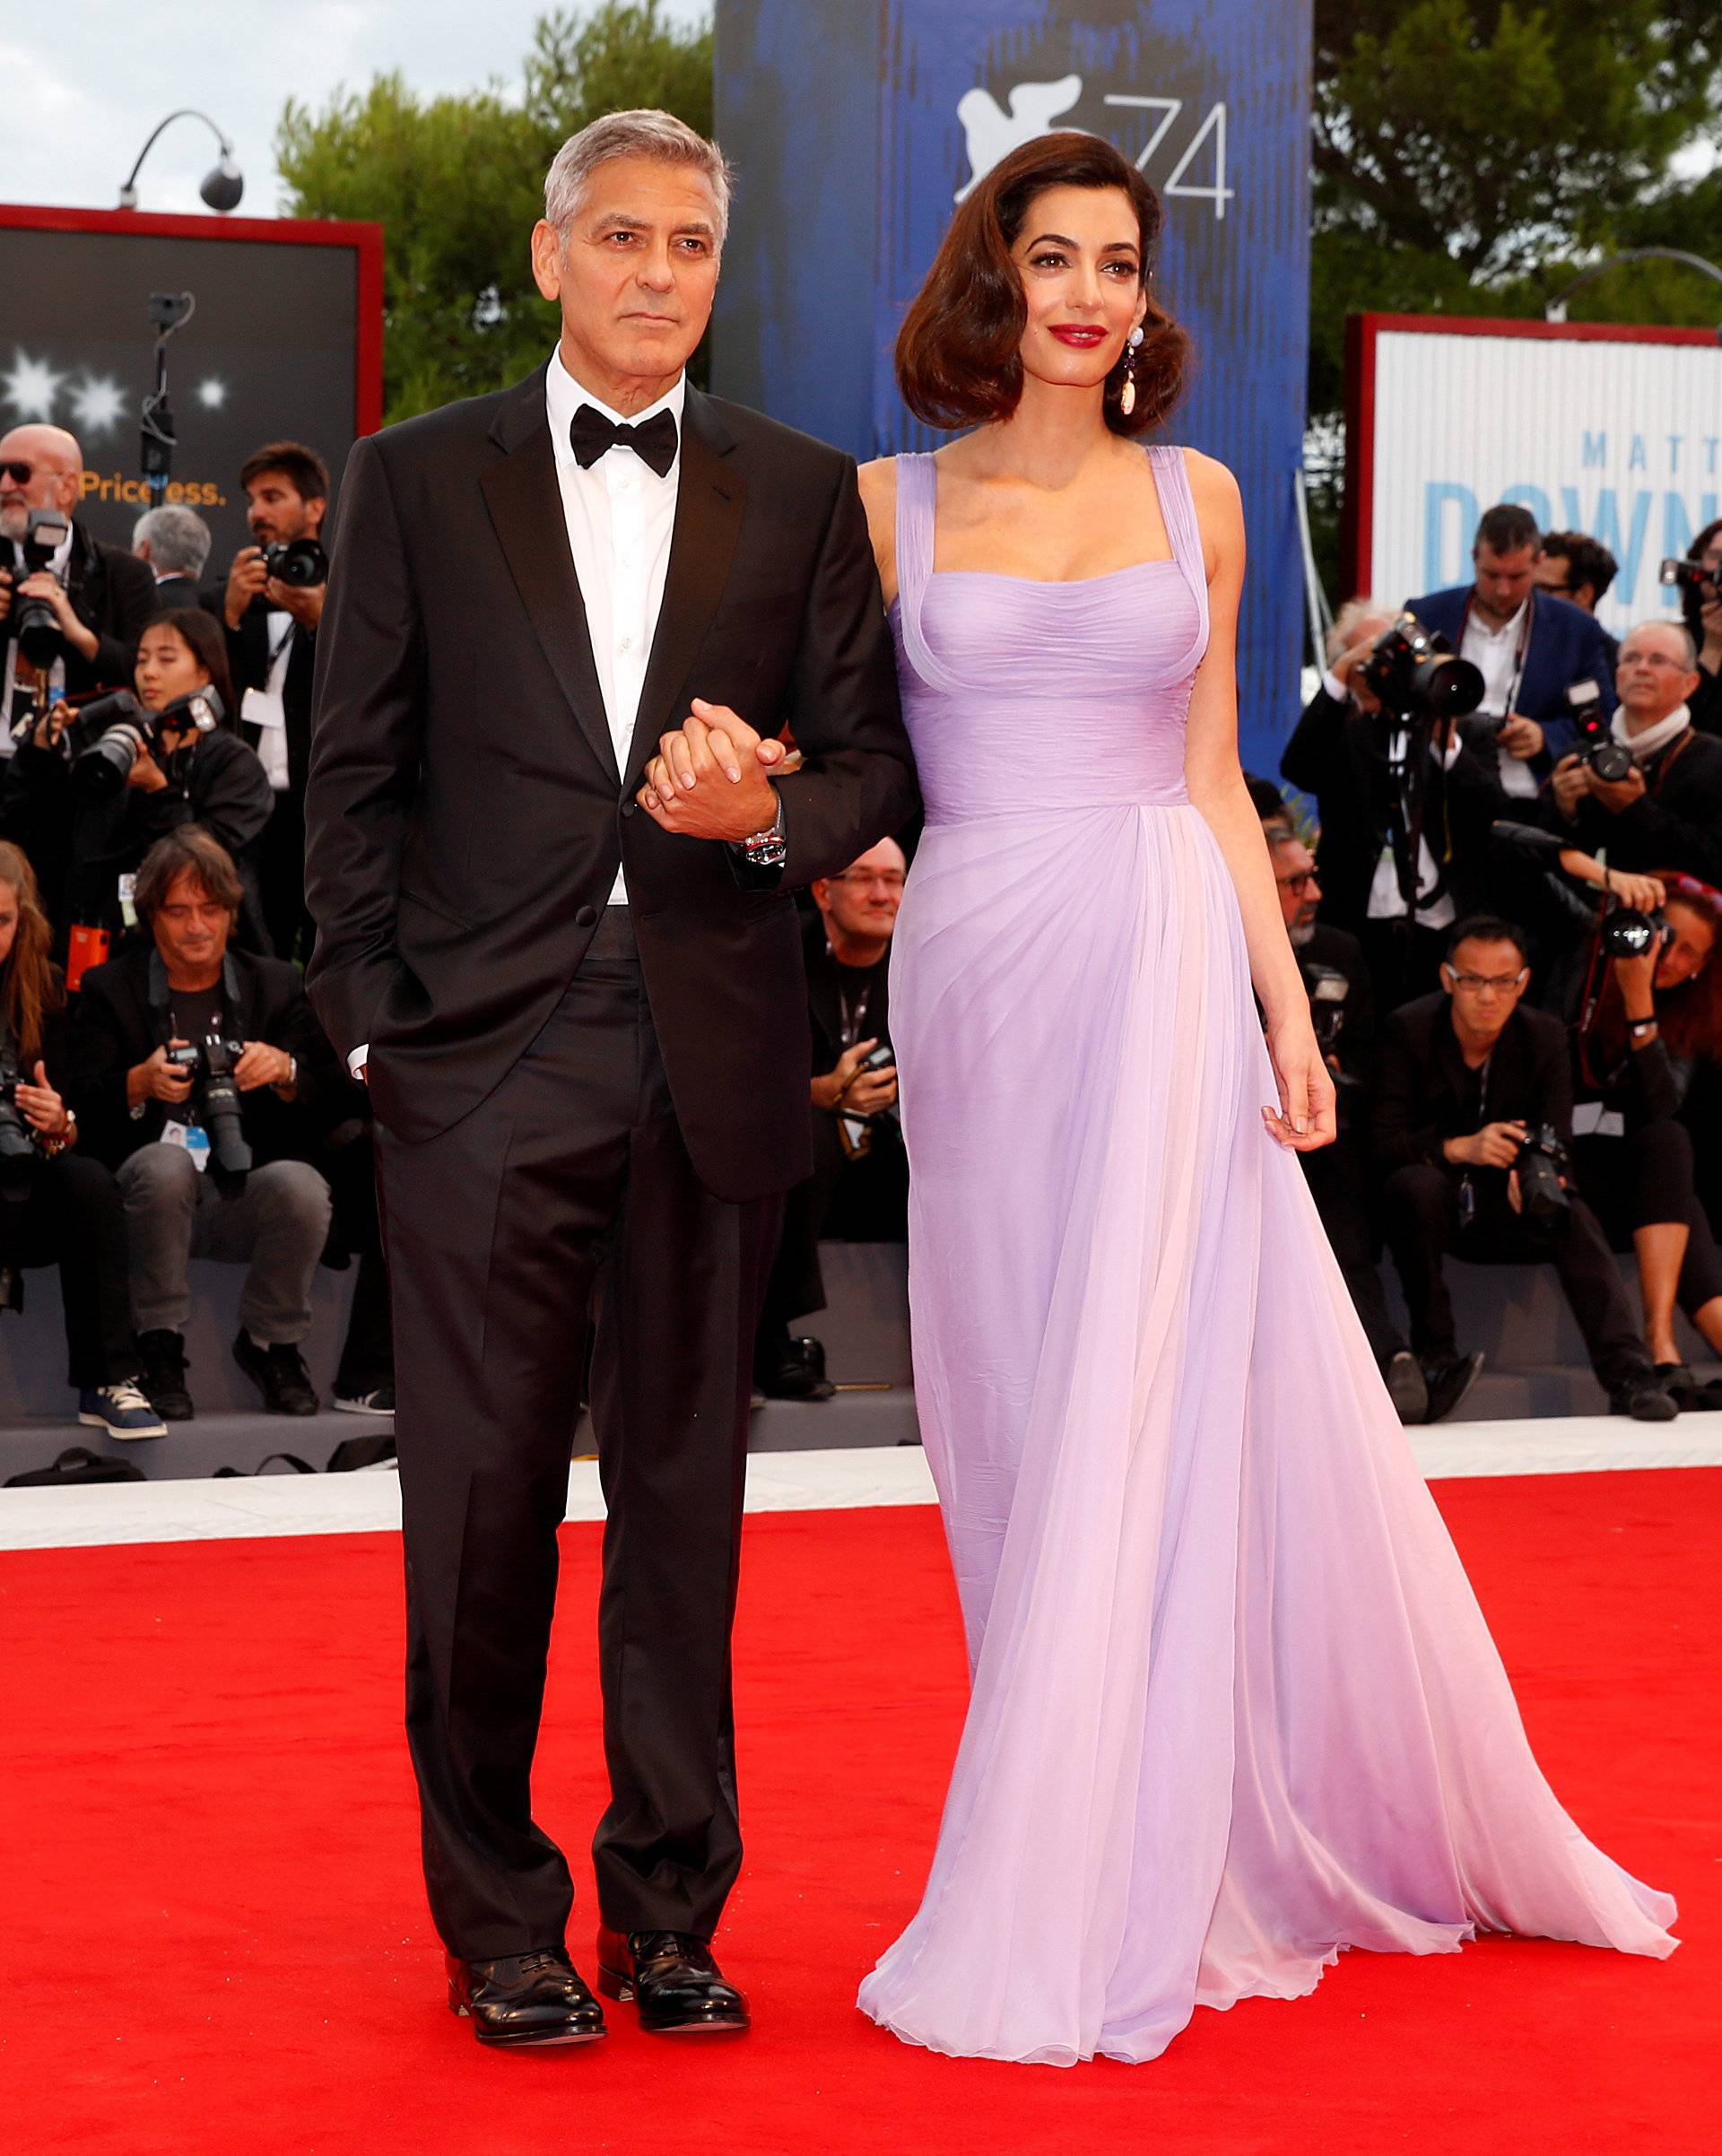 """Actor and director George Clooney and his wife Amal pose during a red carpet event for the movie """"Suburbicon"""" at the 74th Venice Film Festival in Venice, Italy"""